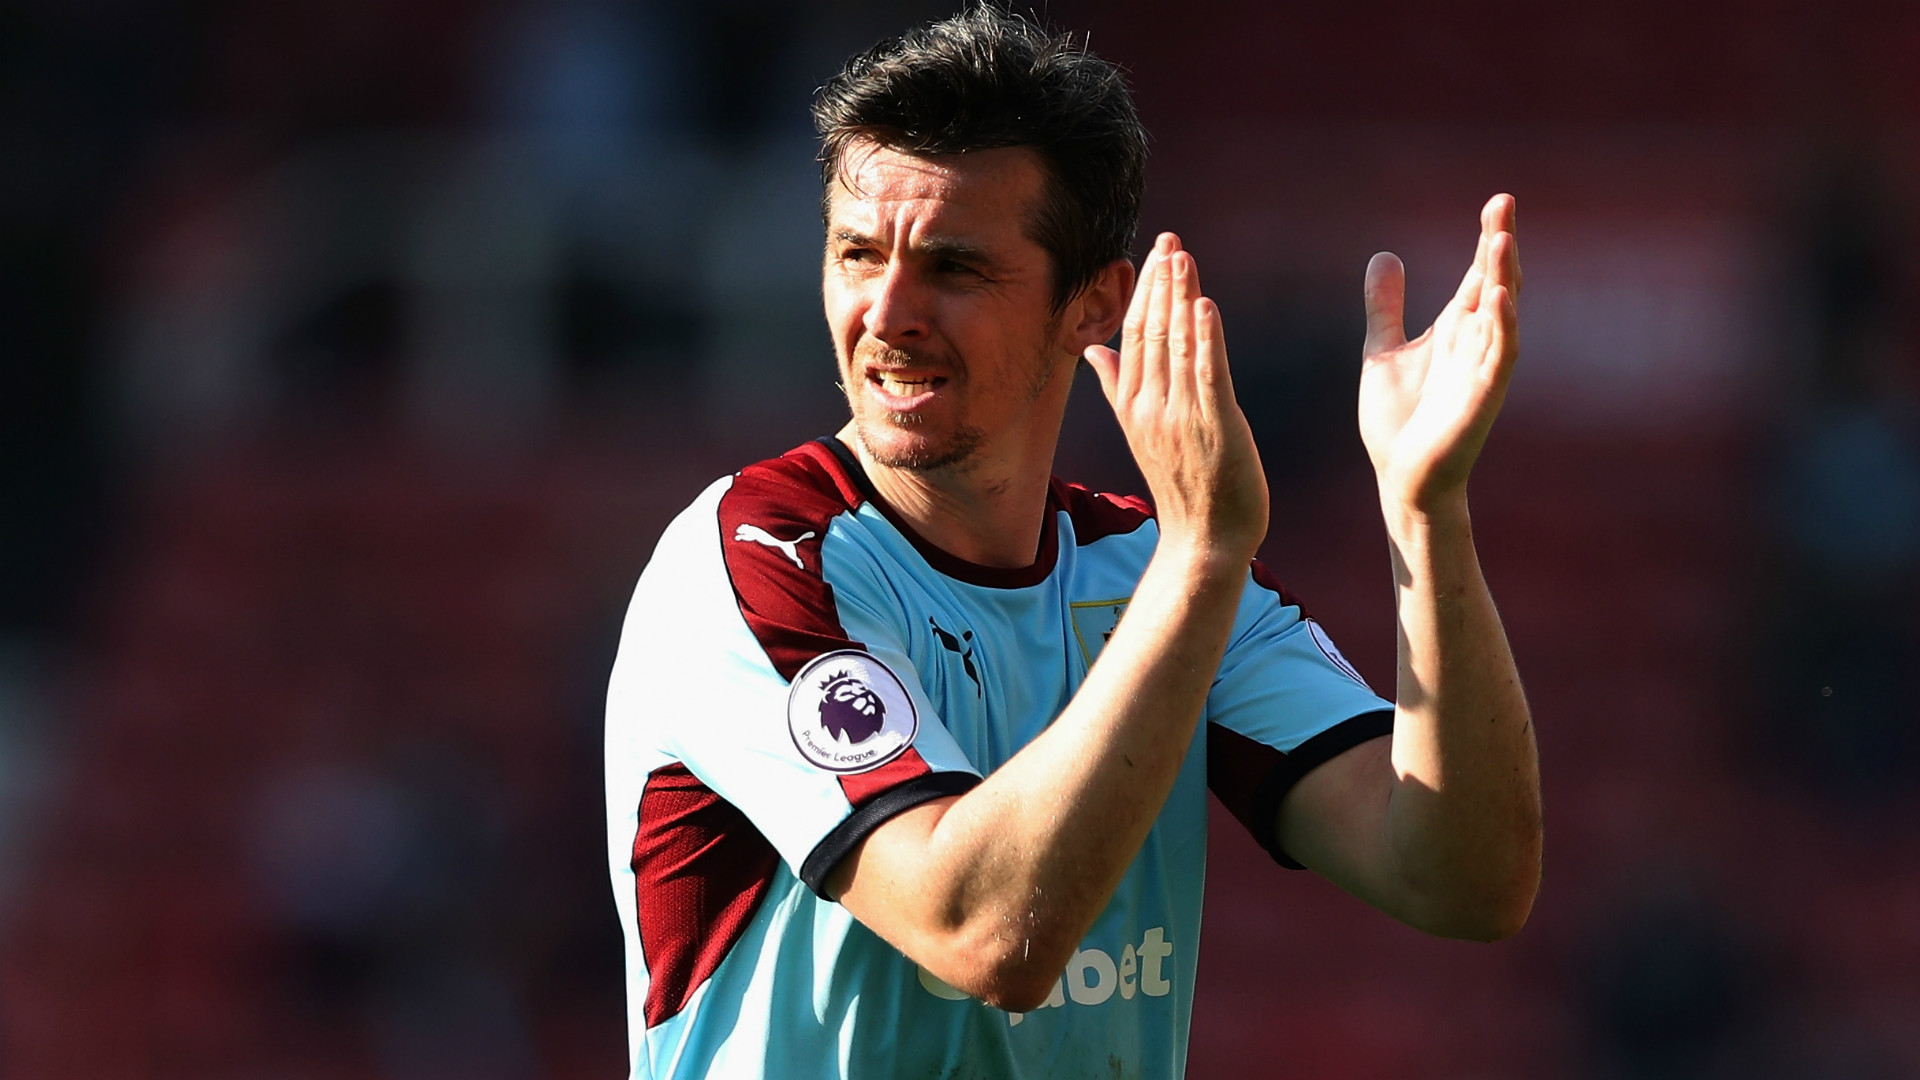 Joey Barton to take Fleetwood manager's job once betting ban ends